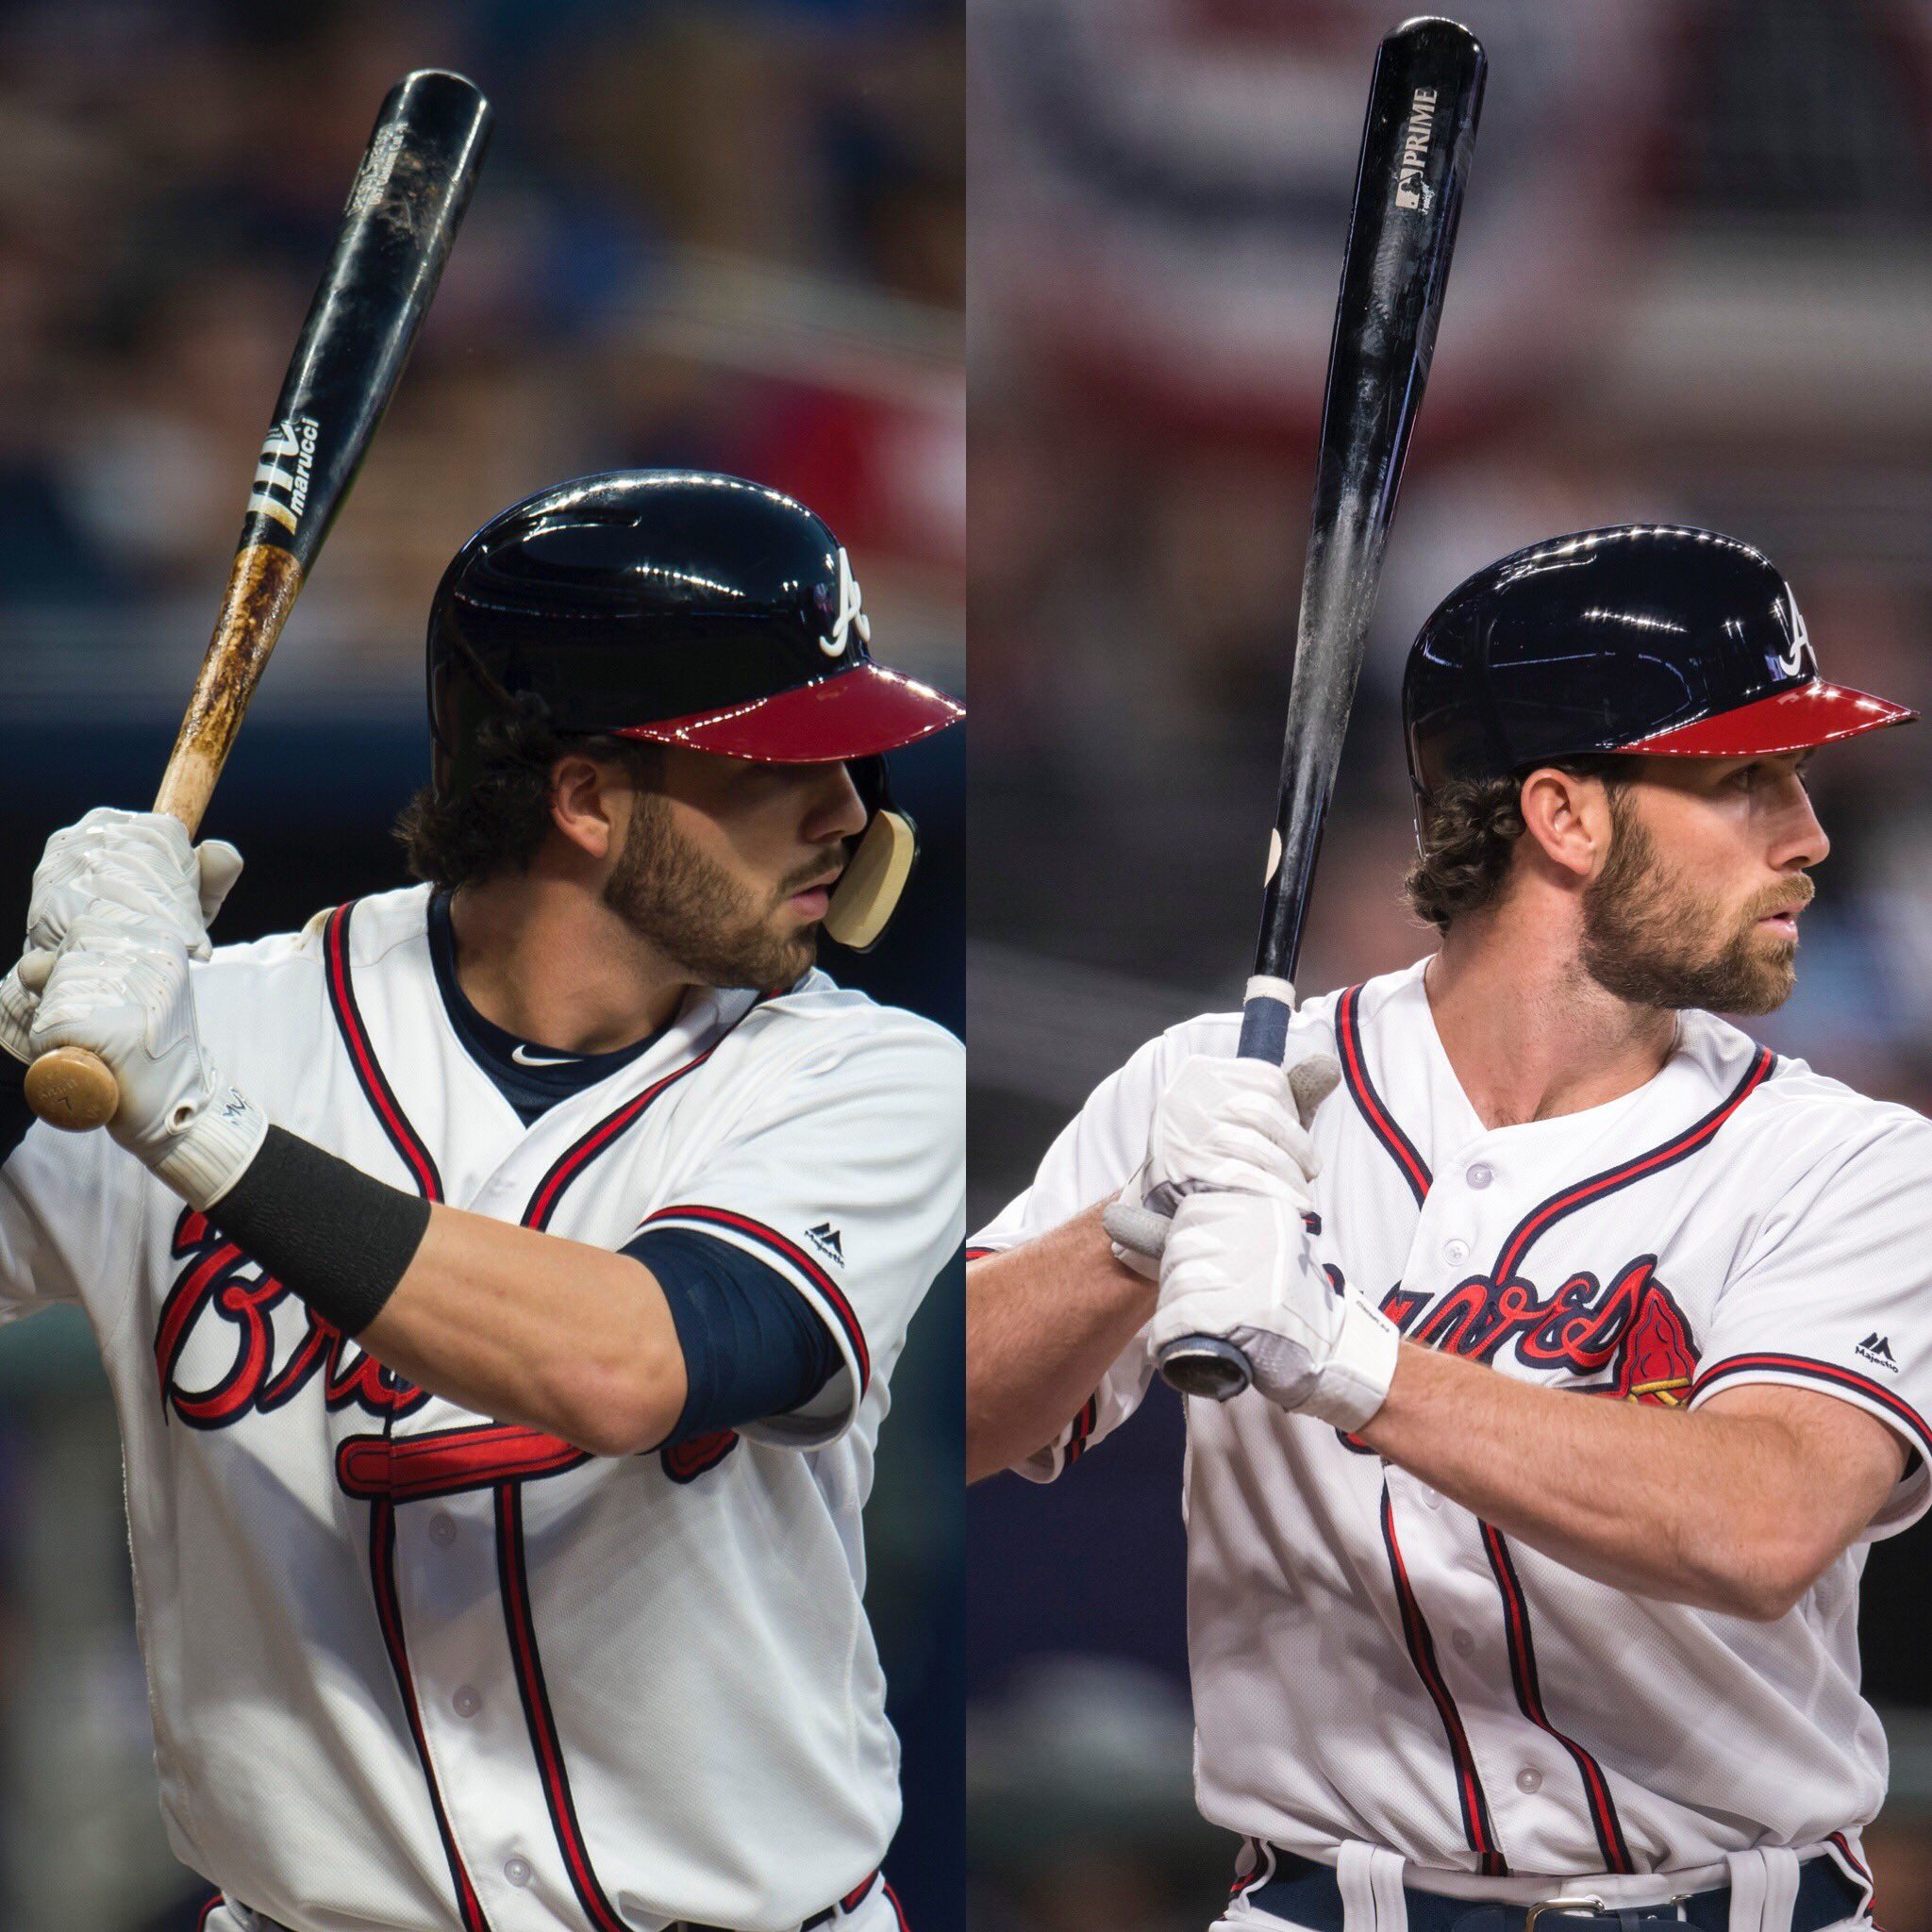 Atlanta Braves On Twitter Atlanta Braves Baseball Braves Hot Baseball Players